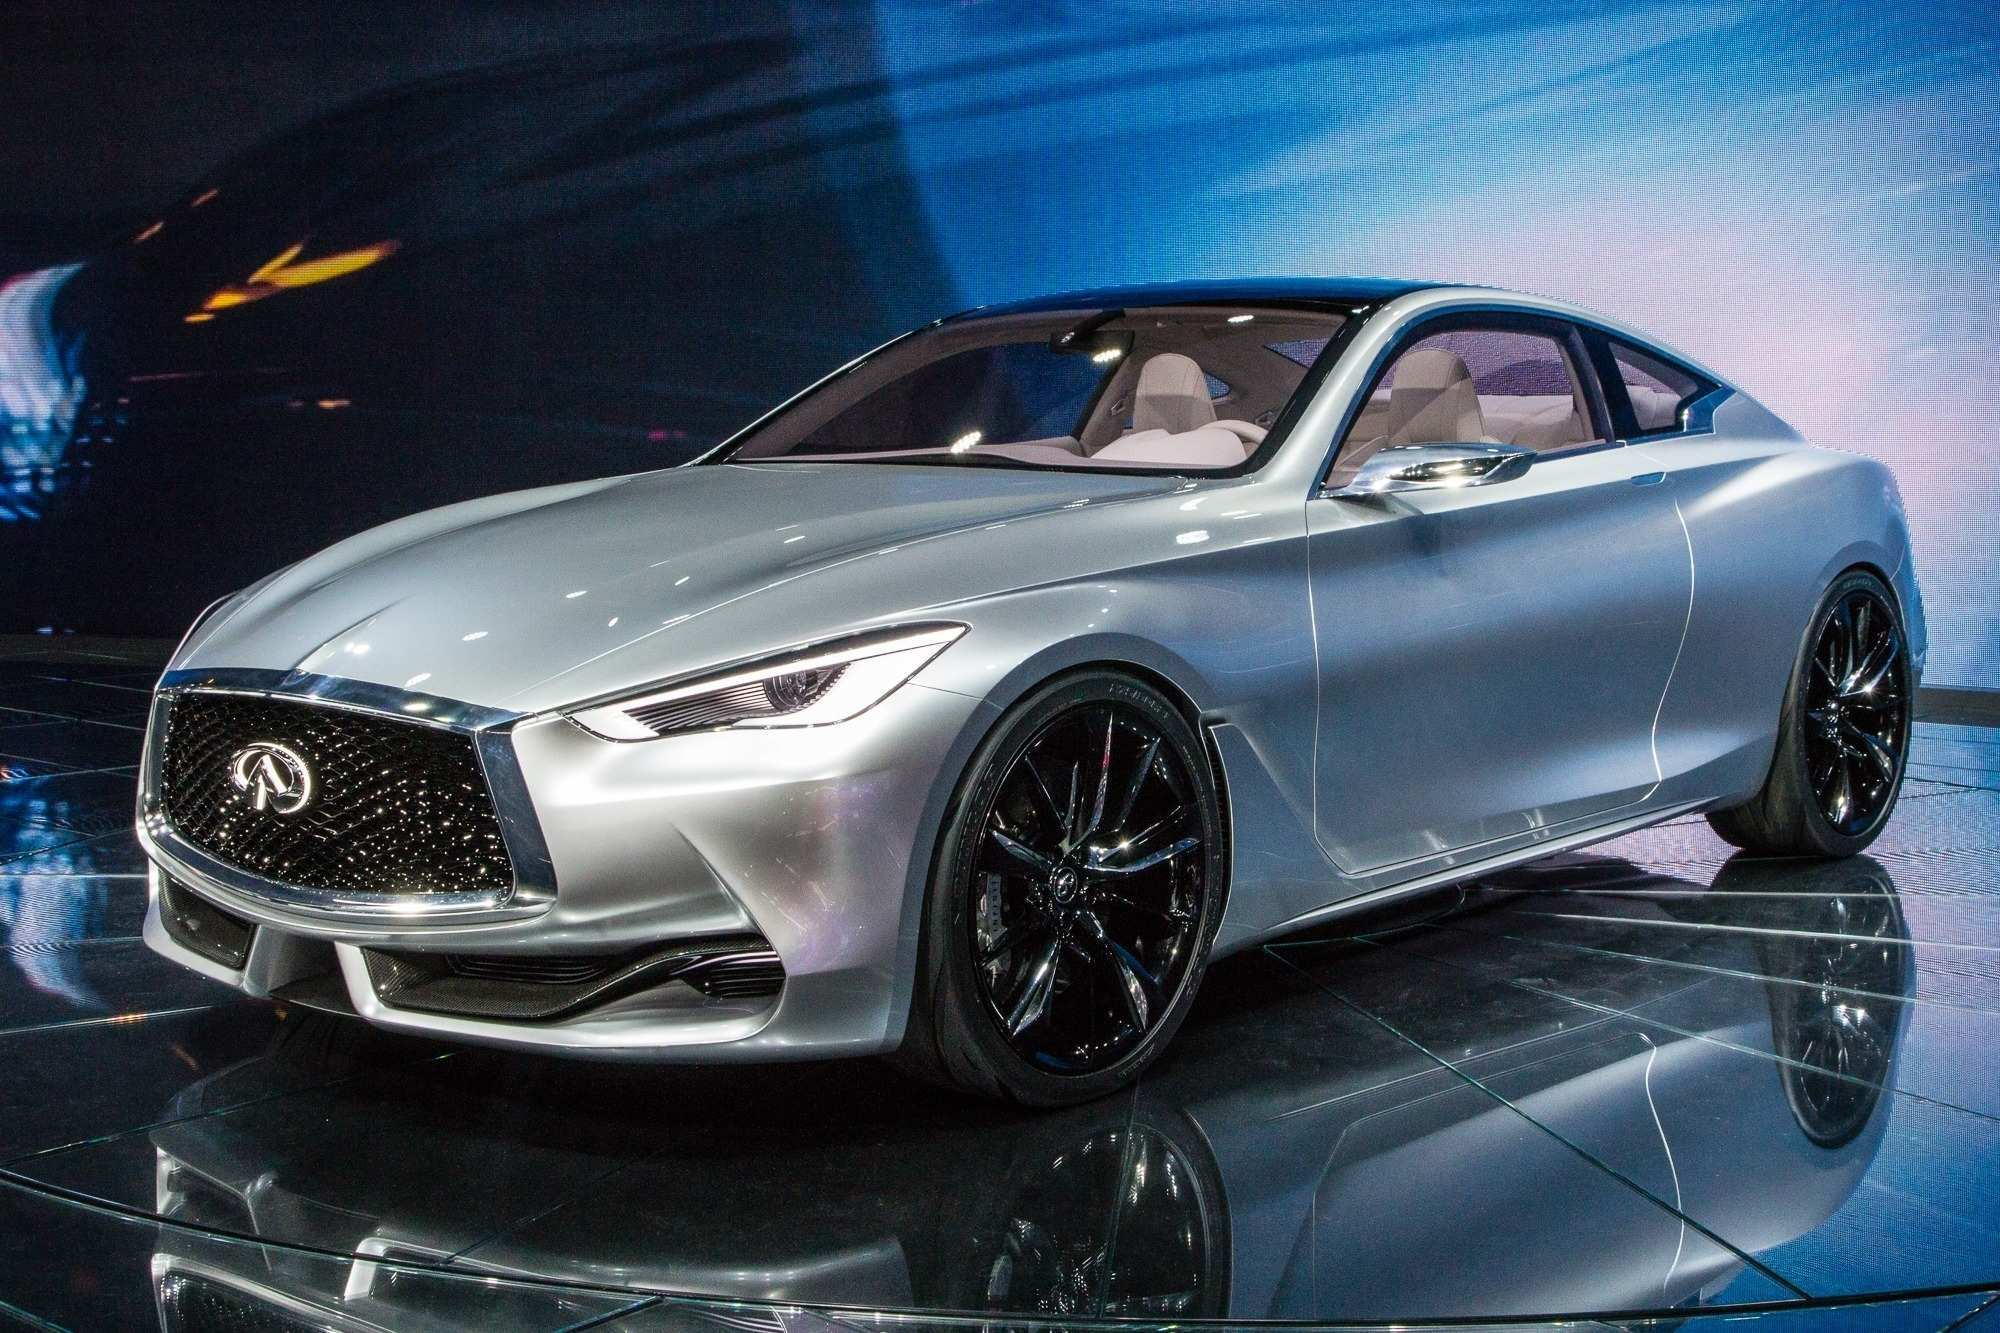 77 All New 2019 Infiniti Q60 Coupe Ipl Specs And Review